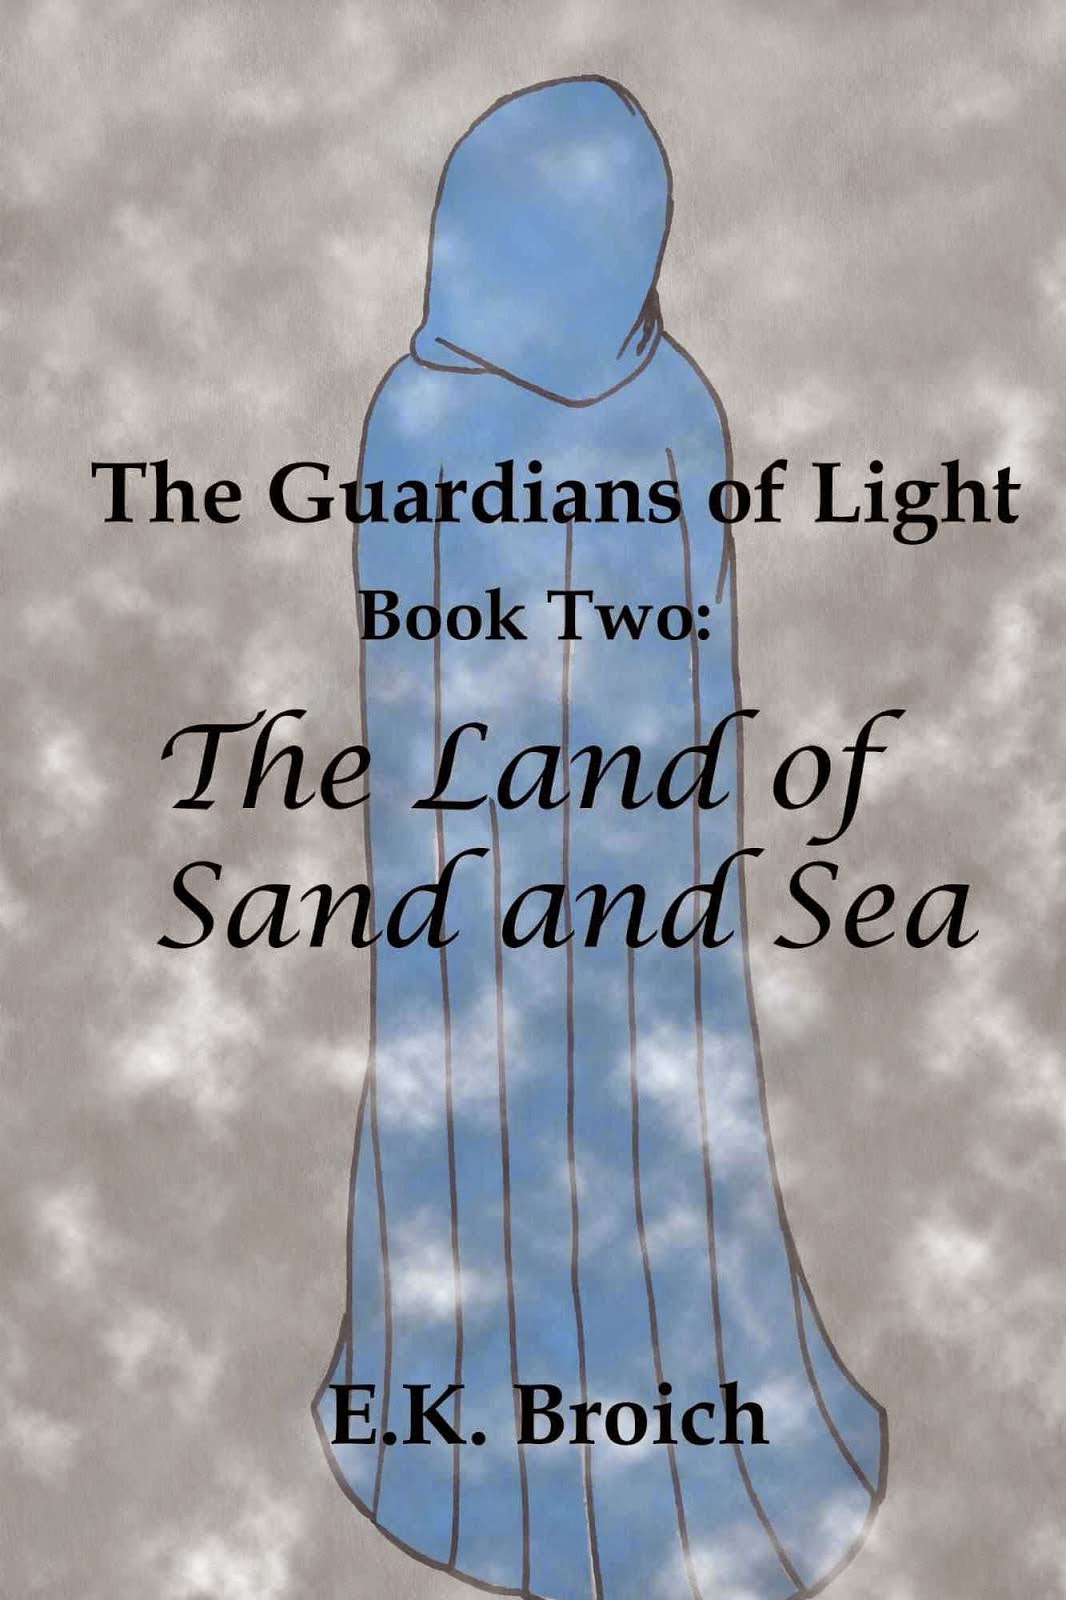 The Guardians of Light, Book Two: The Land of Sand and Sea